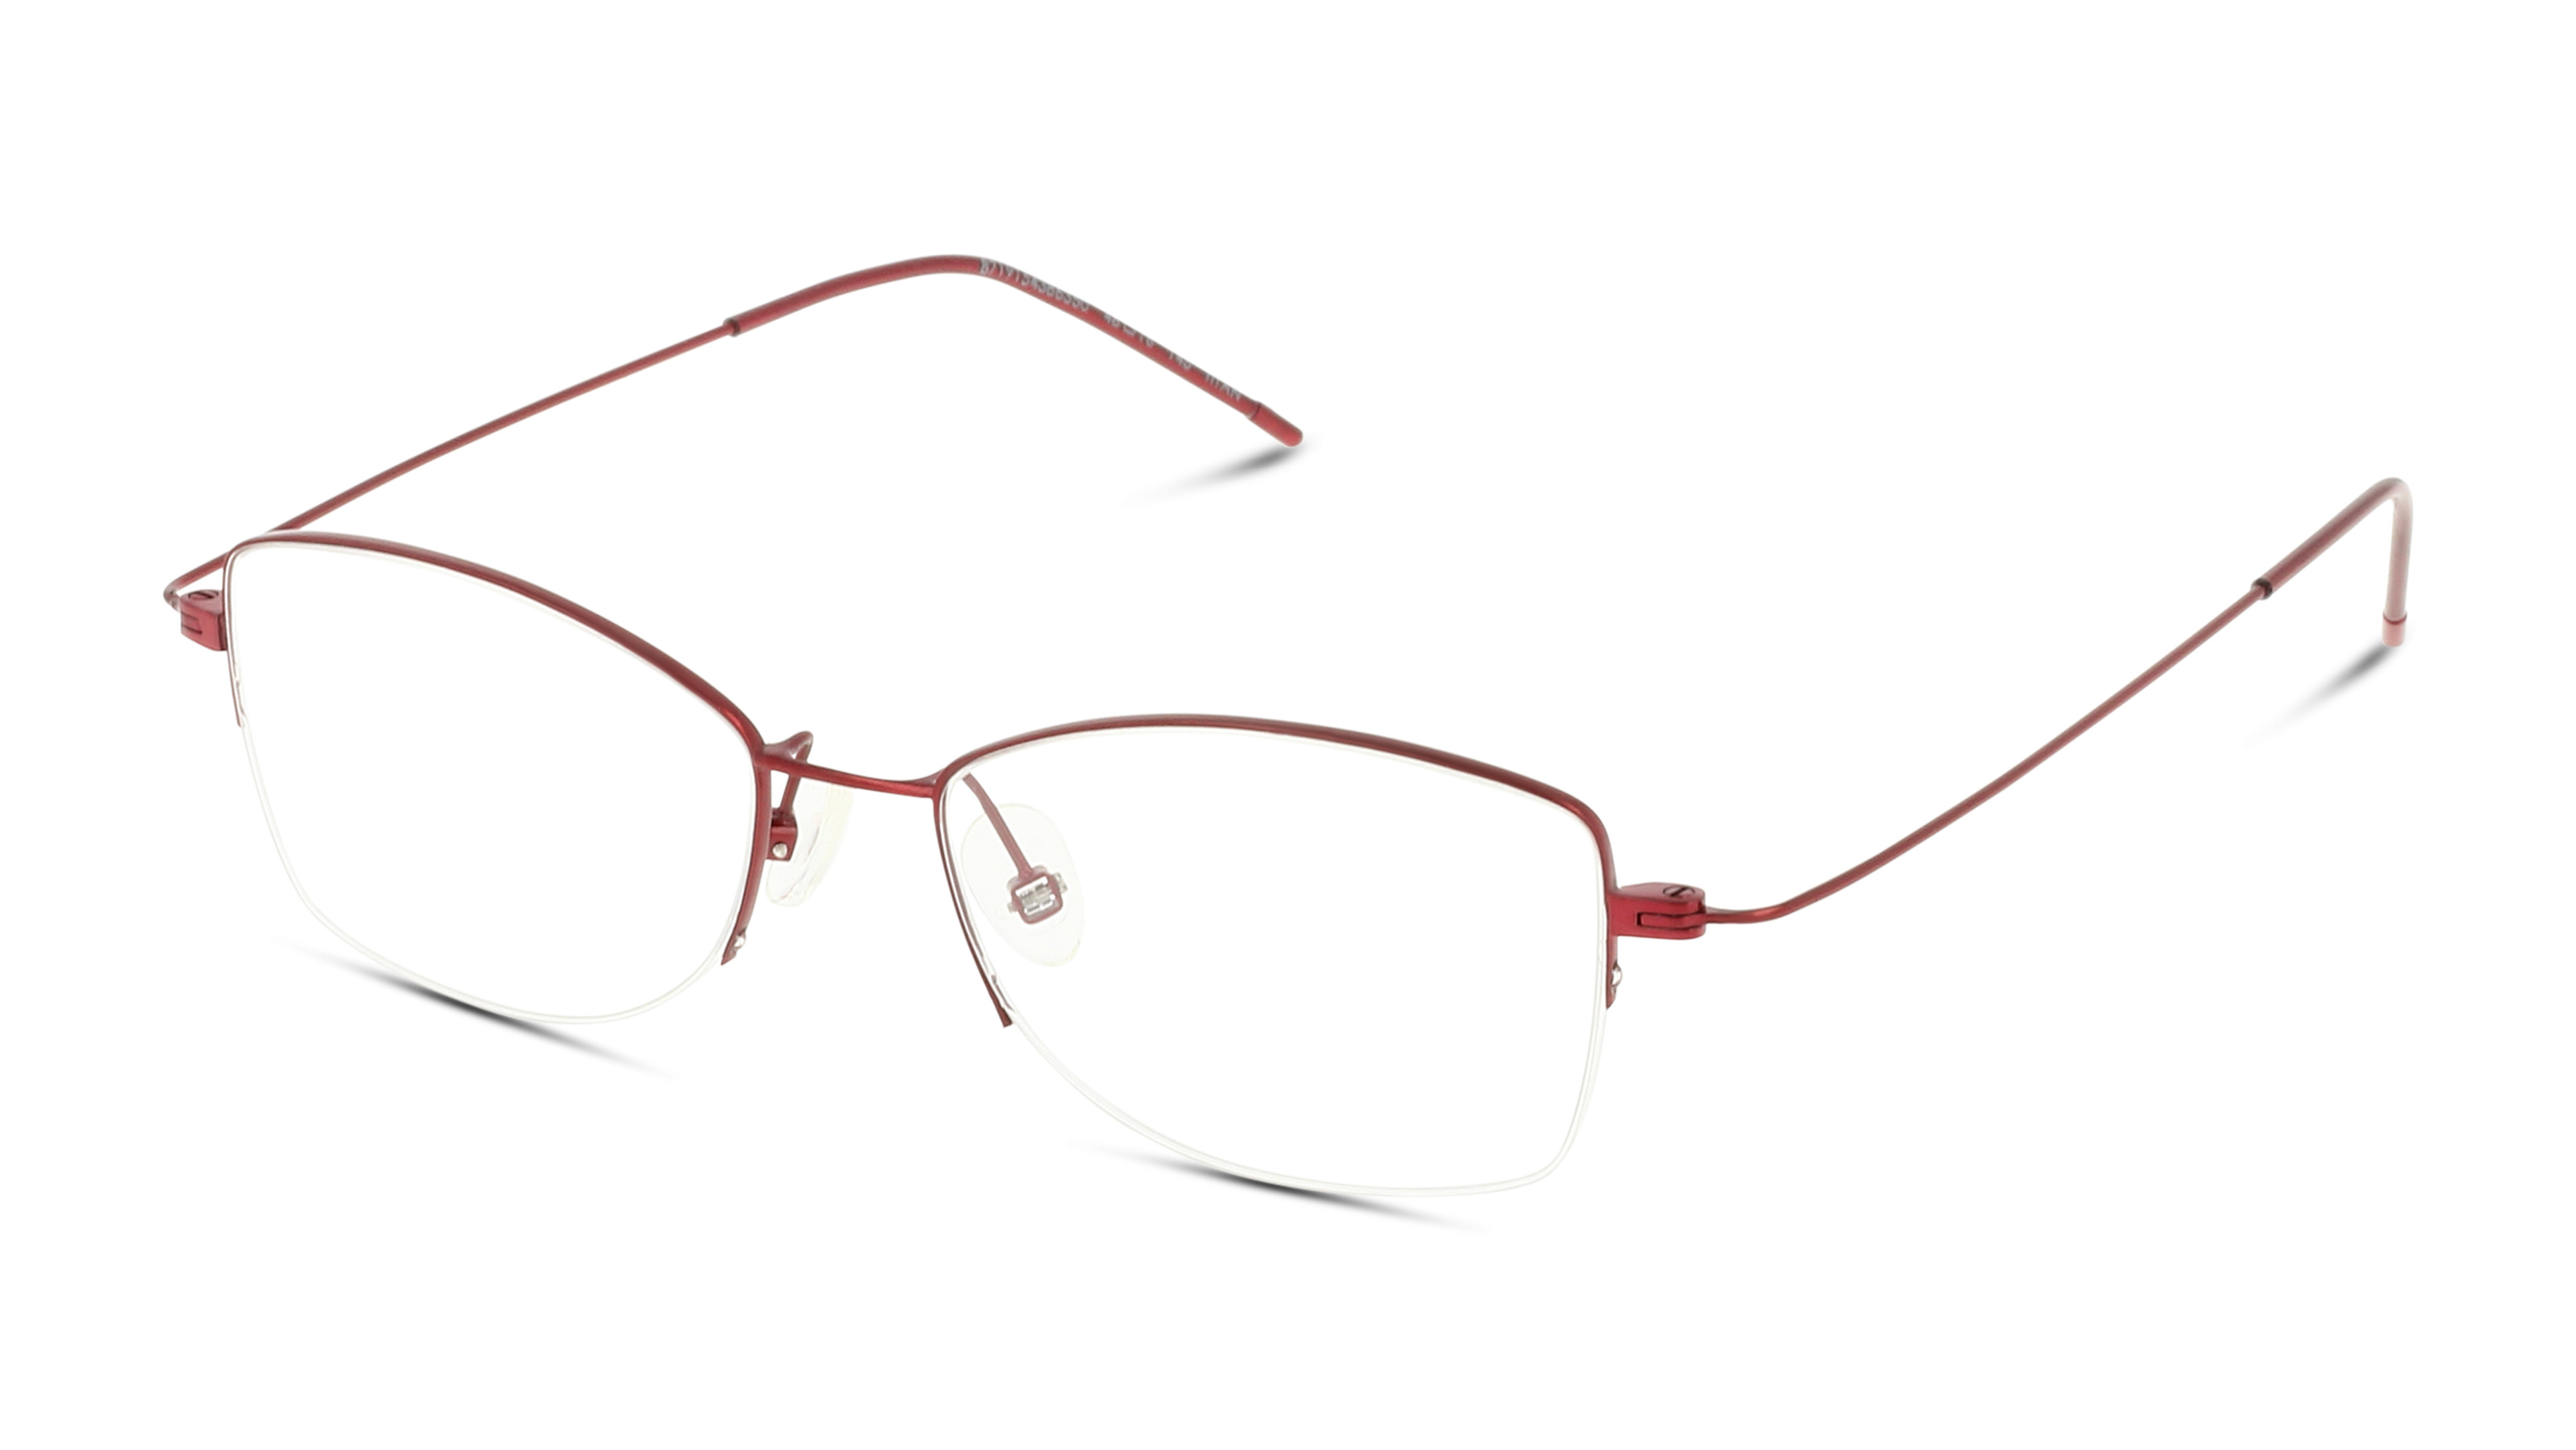 8719154619656-angle-03-light-fly-lfjf09-Eyewear-red-red